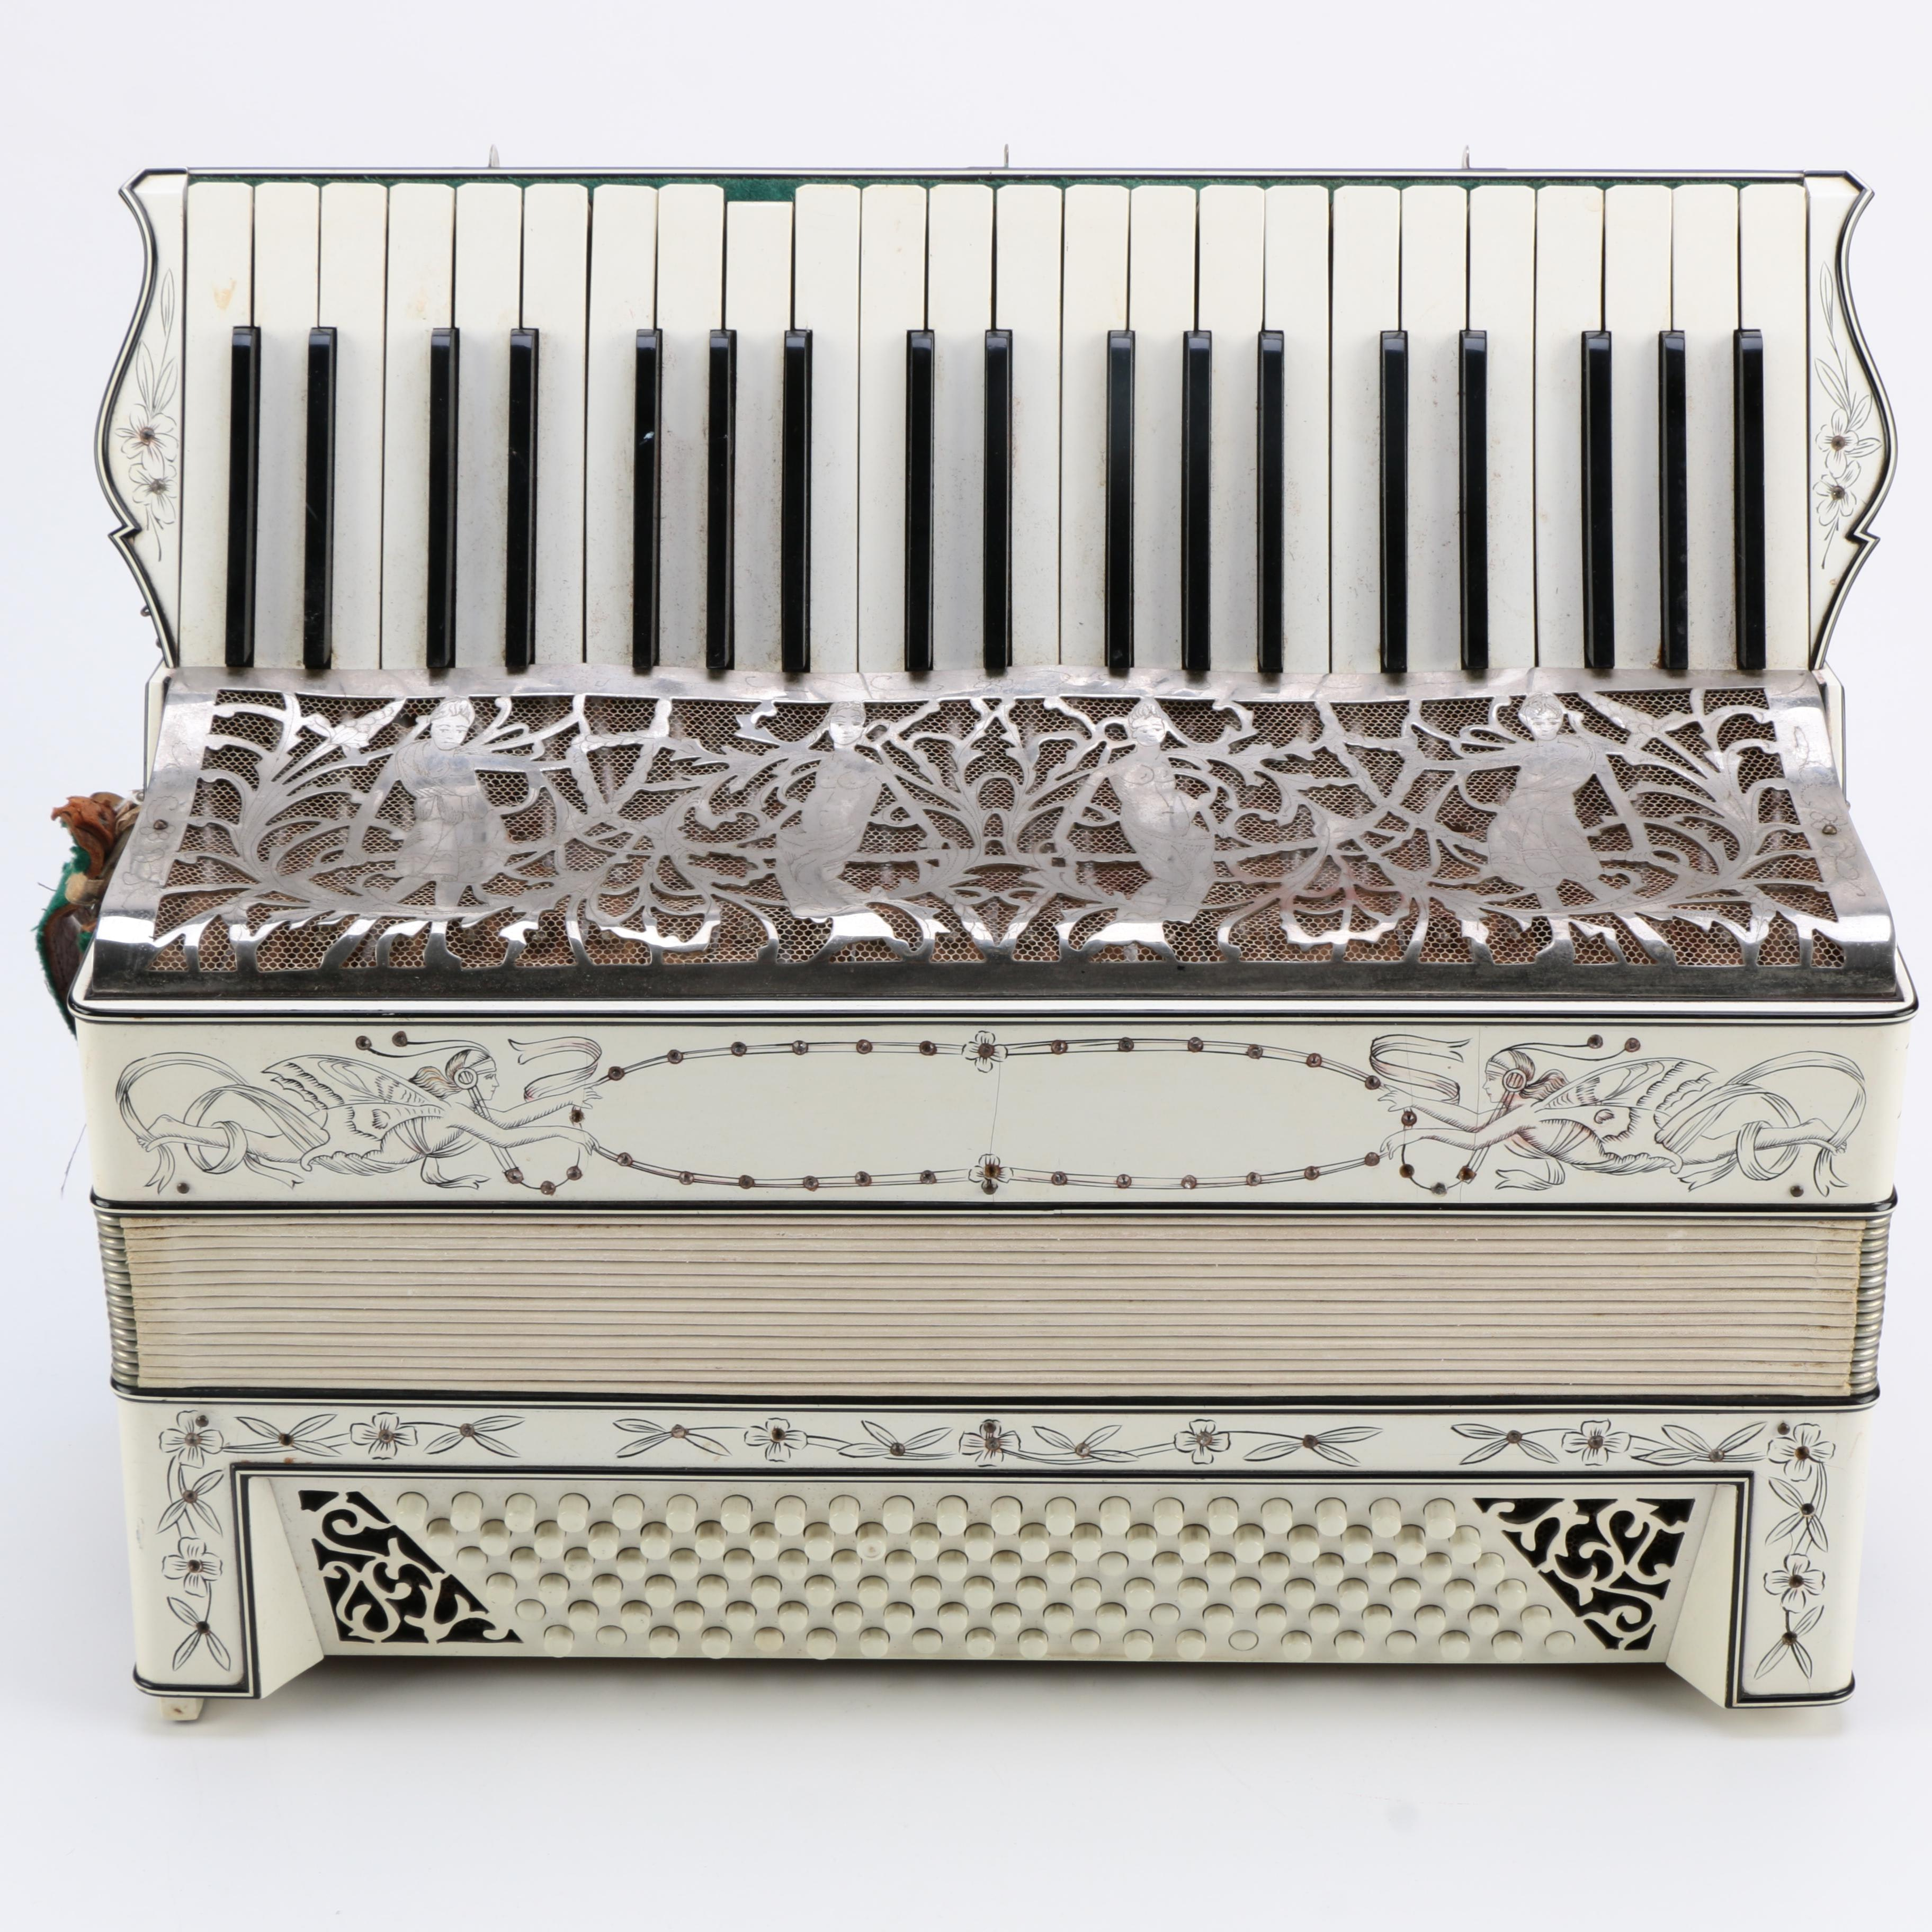 Art Nouveau Inspired Piano Accordion With Floral and Figural Designs